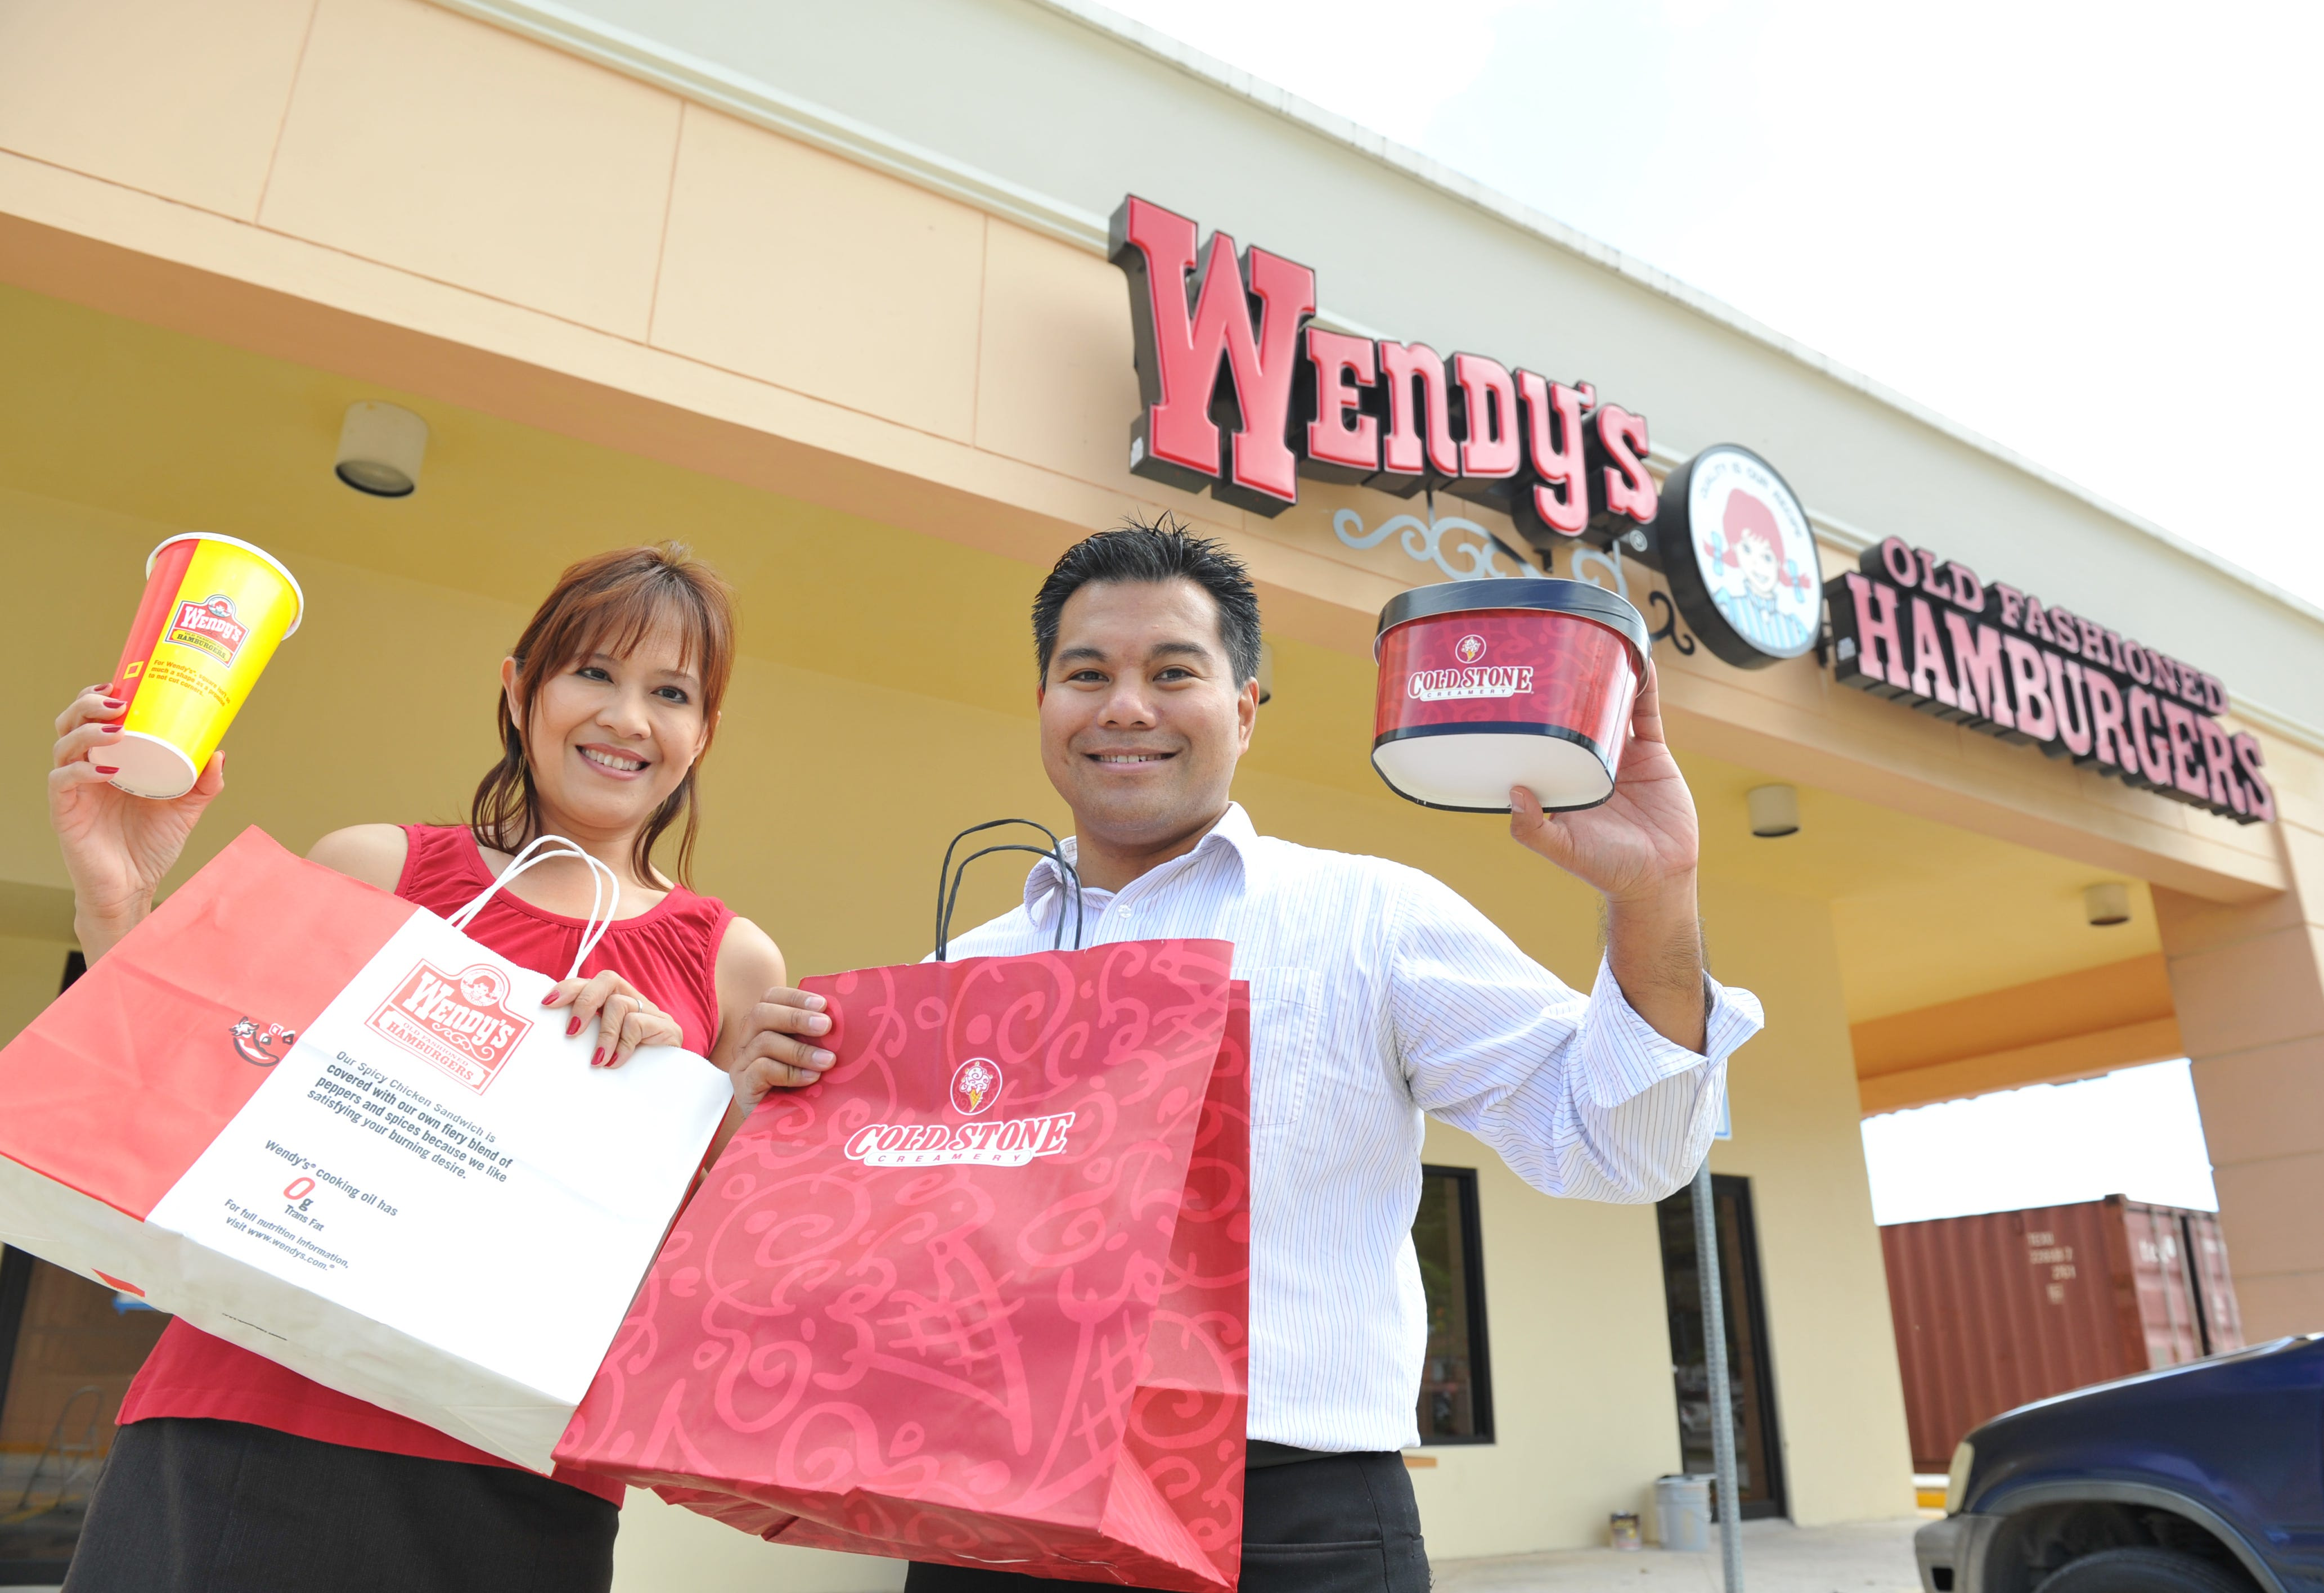 Jun and Sumiko Espaldon are photographed outside the Wendy's at Agana Shopping Center.